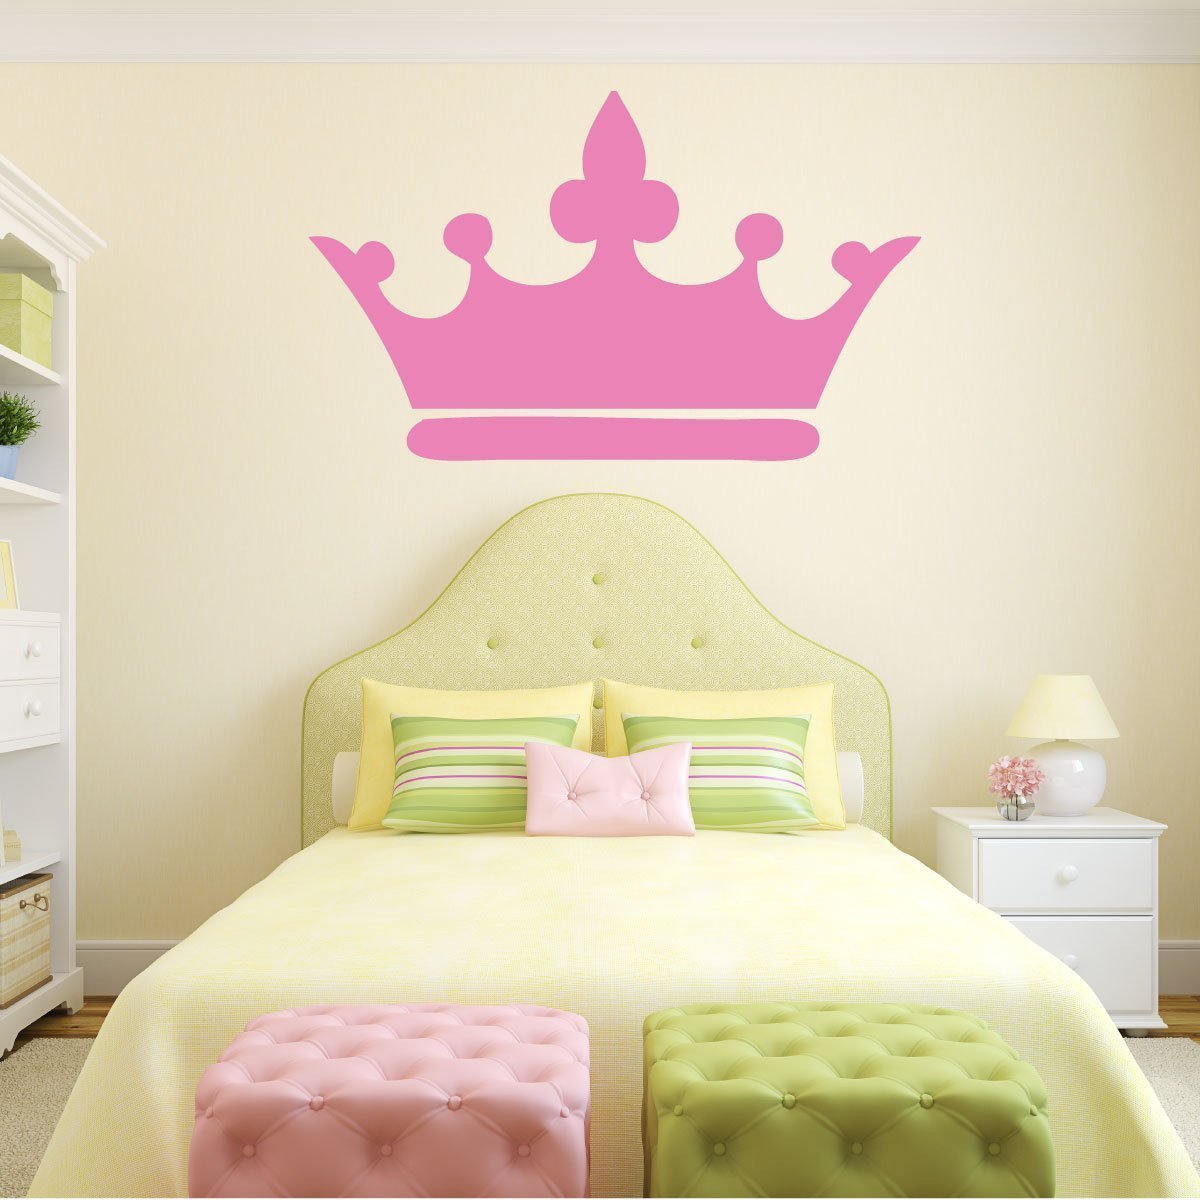 Cool Pink And Gray Wall Decor Contemporary - The Wall Art ...